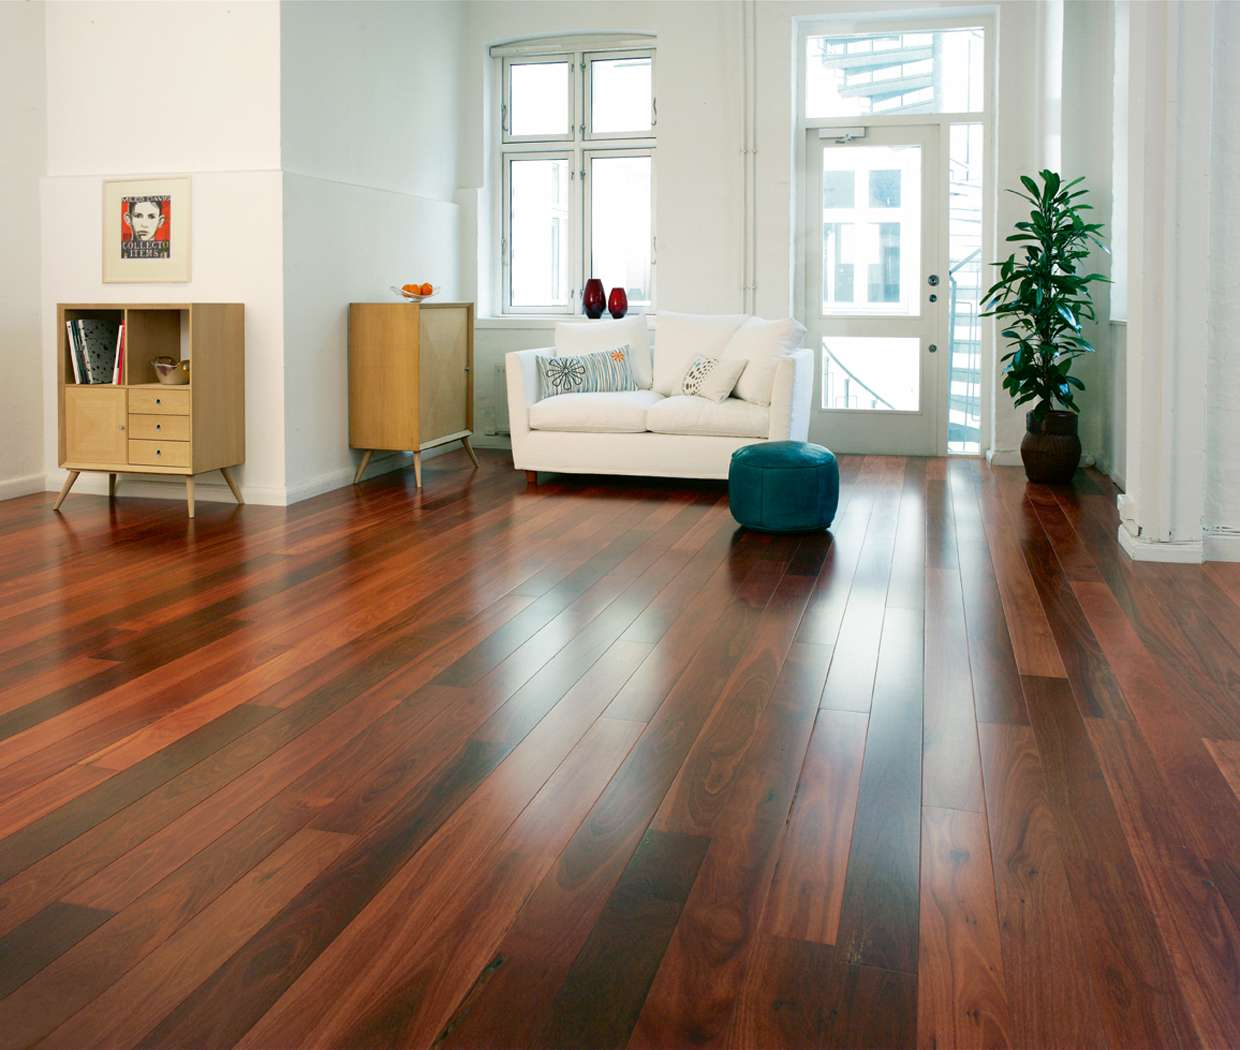 Image of: engineered wood floors livingroom